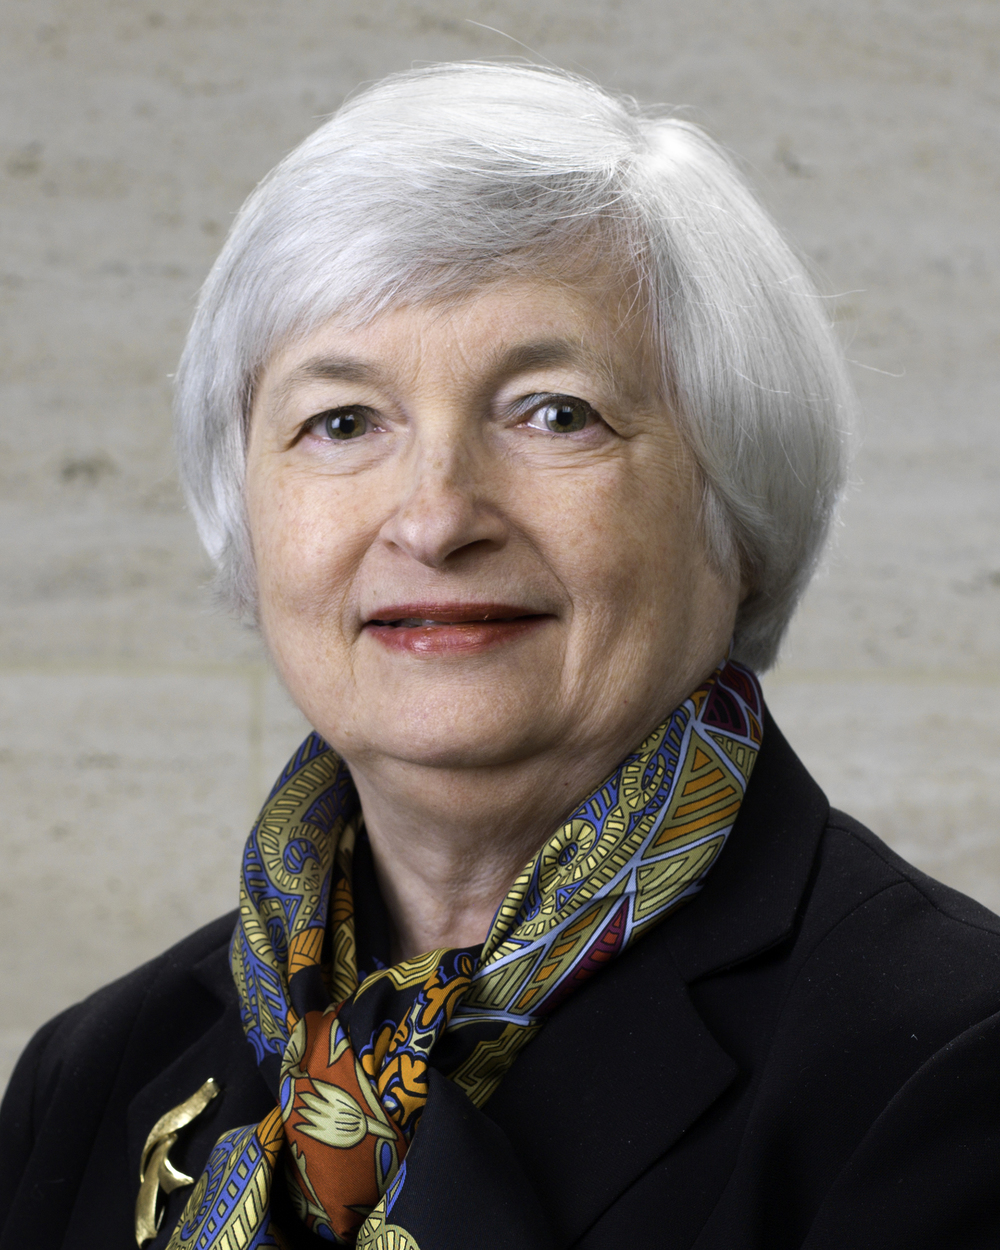 The current leader and chairwoman of the Federal Reserve.